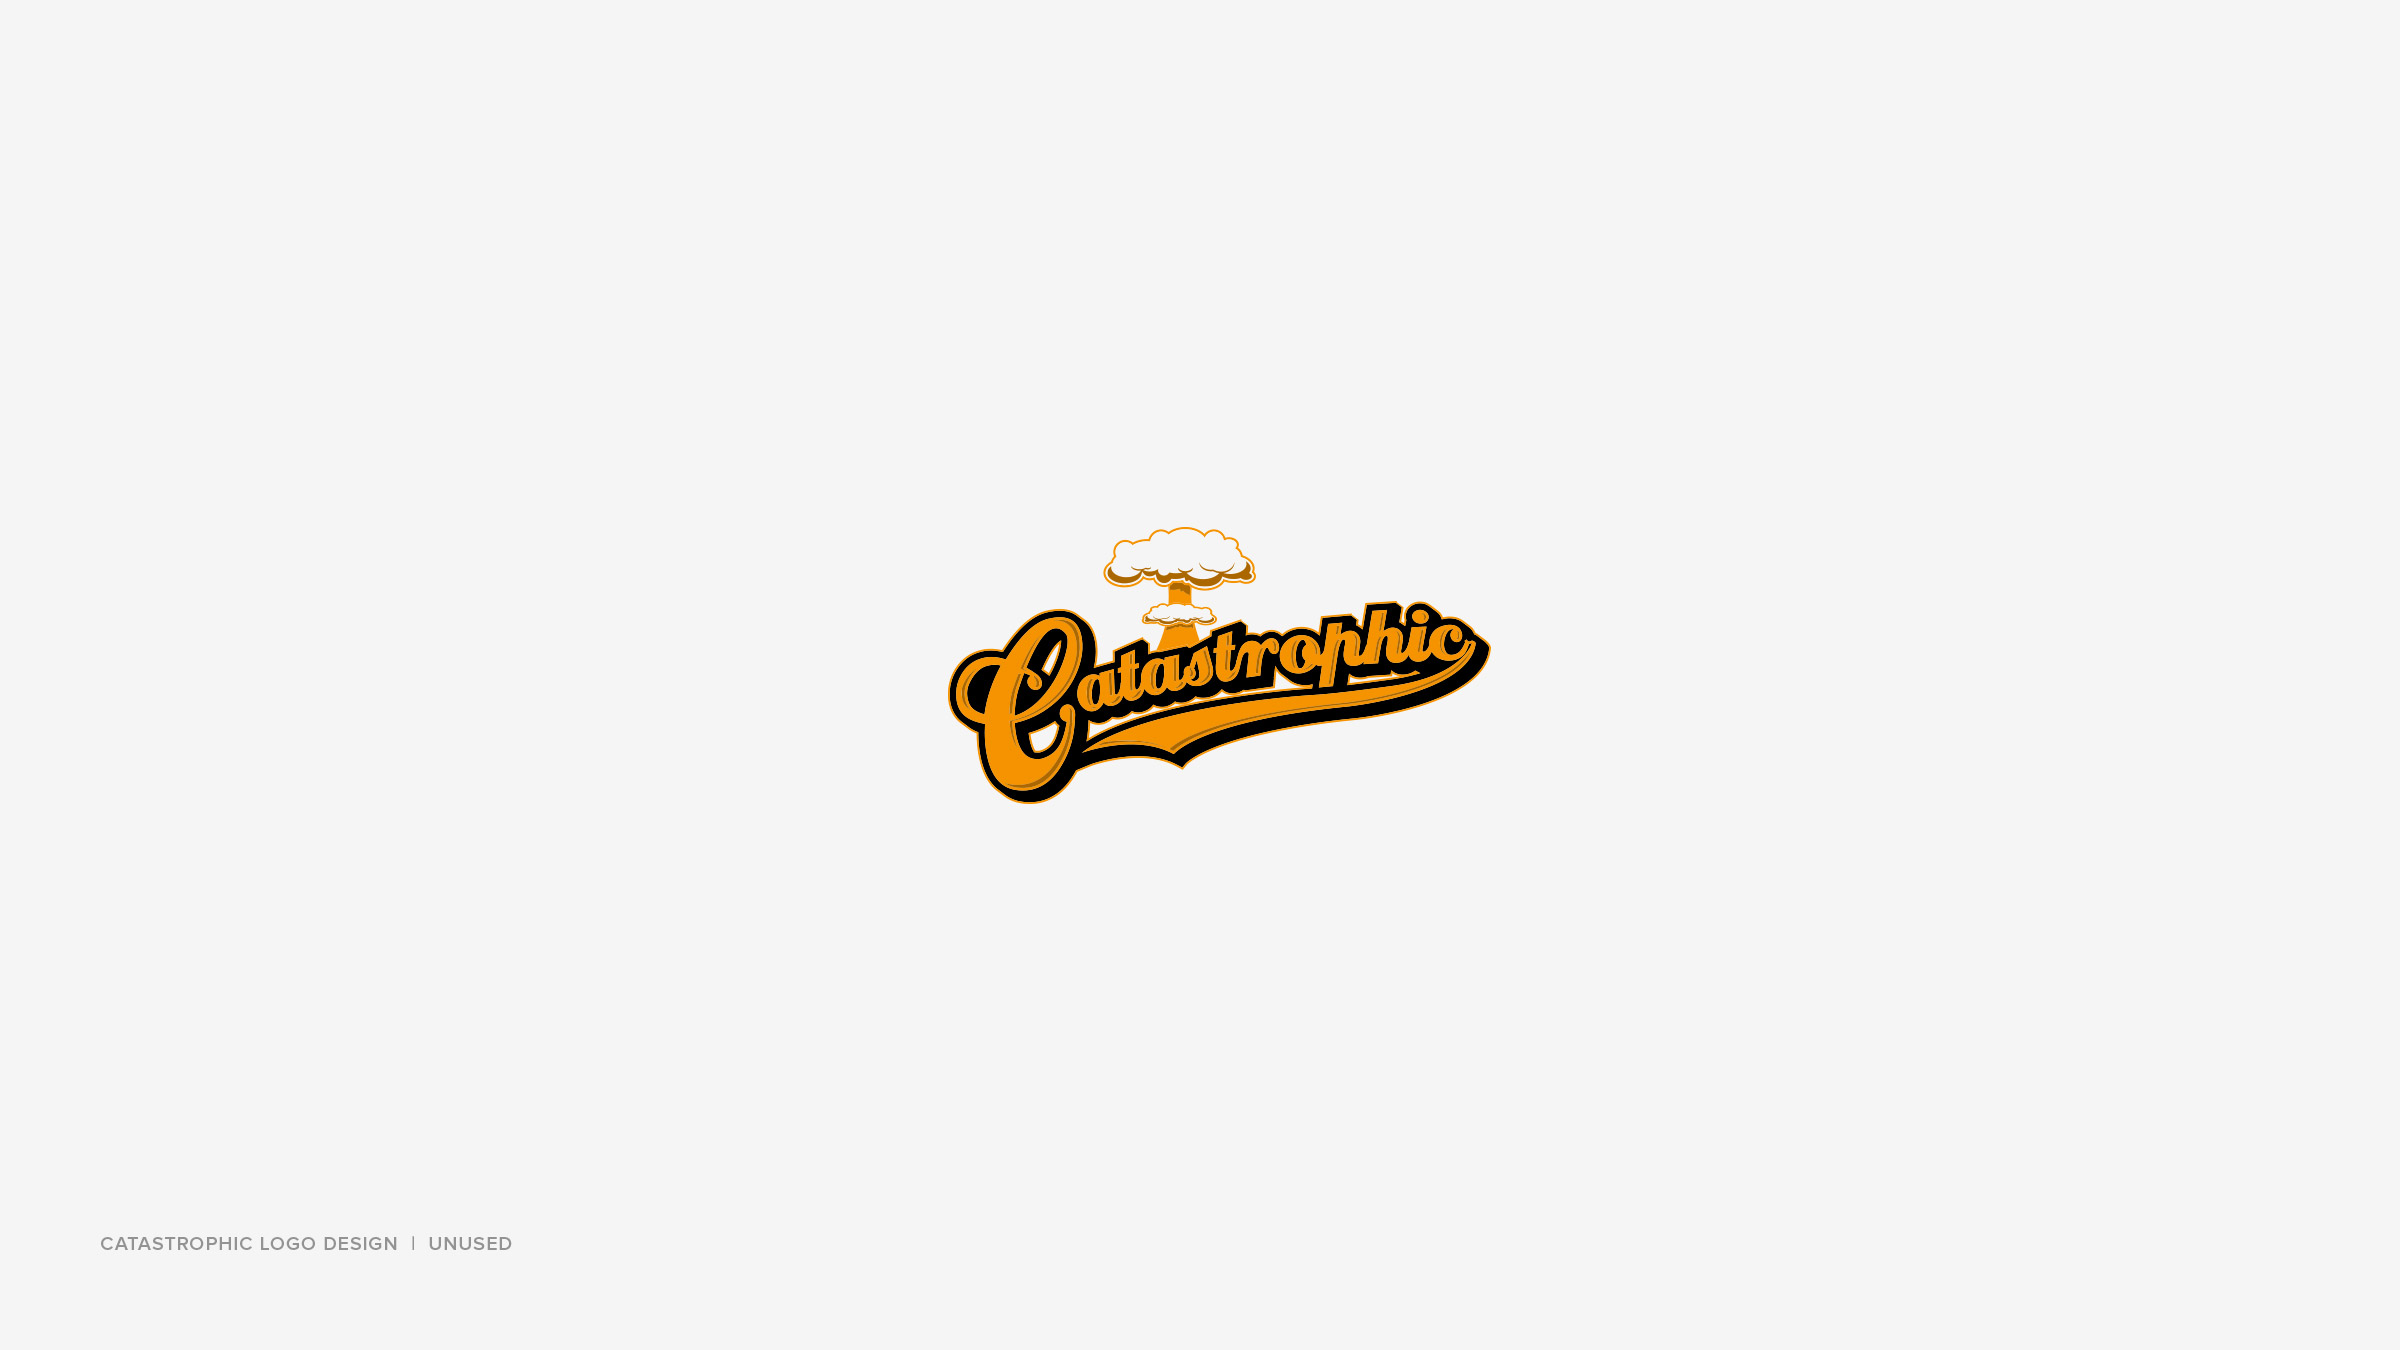 Logo Design Portfolio v.3 10 Catastrophic